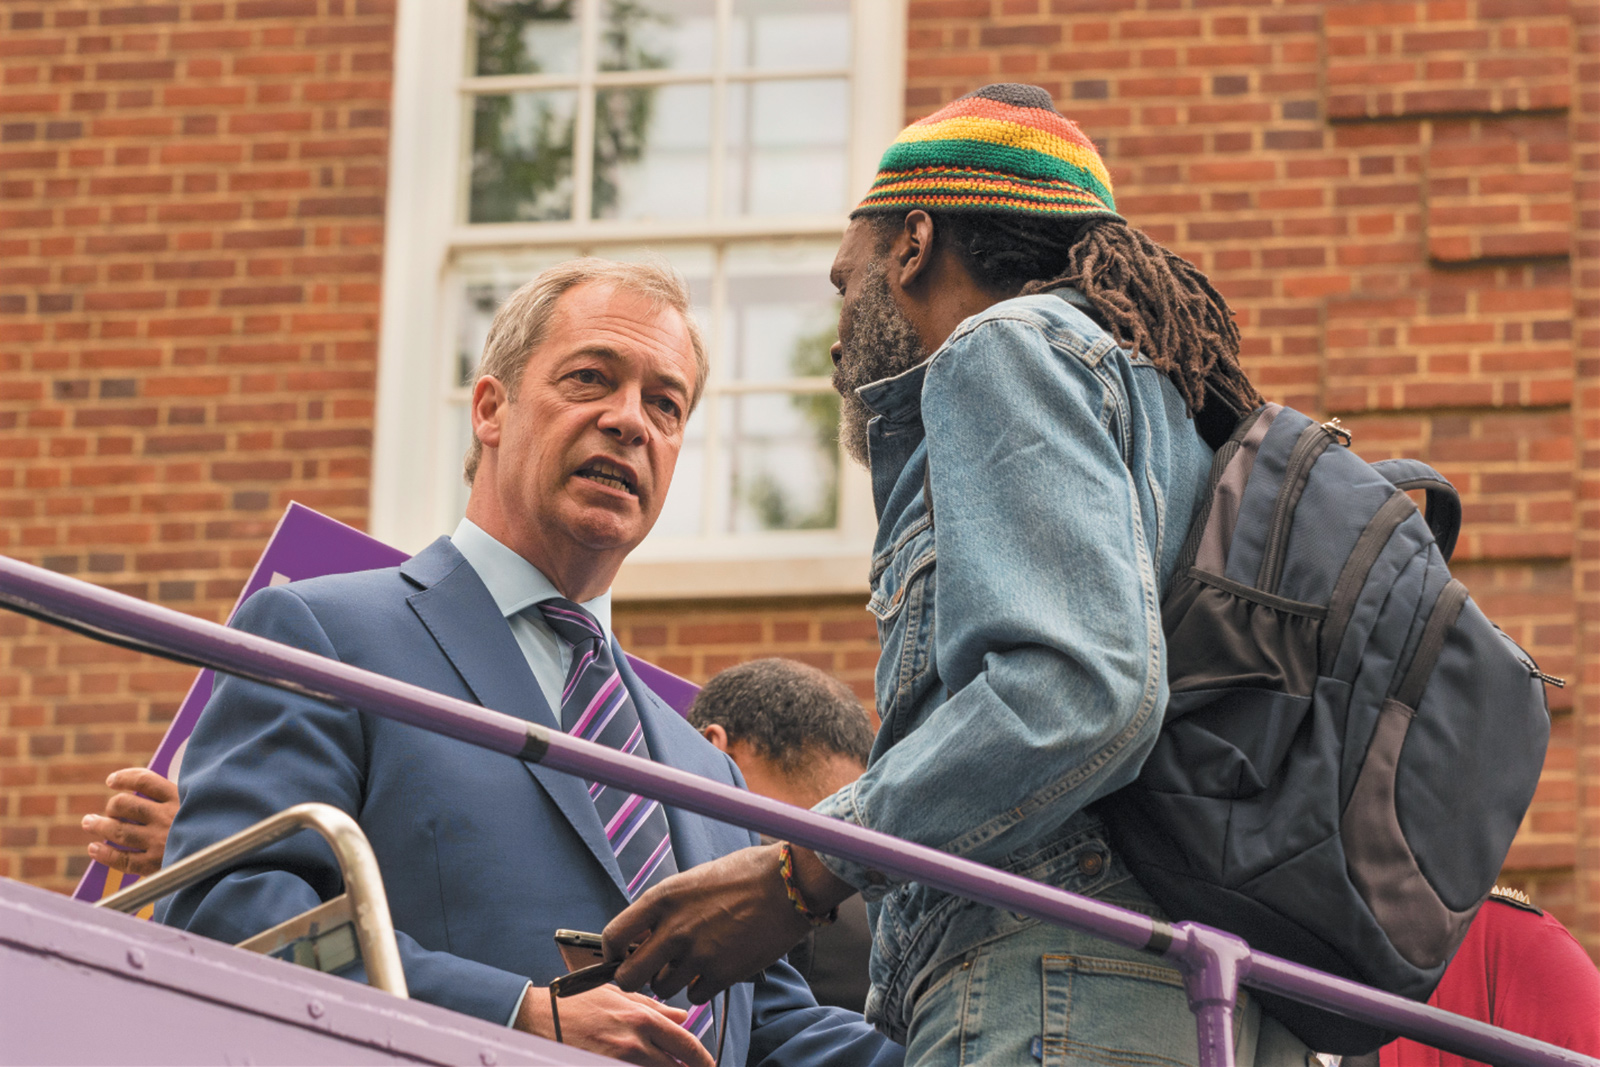 Nigel Farage canvassing for 'Leave' votes during the Brexit campaign, London, May 2016. He resigned as leader of the UK Independence Party on July 4, shortly after the referendum.